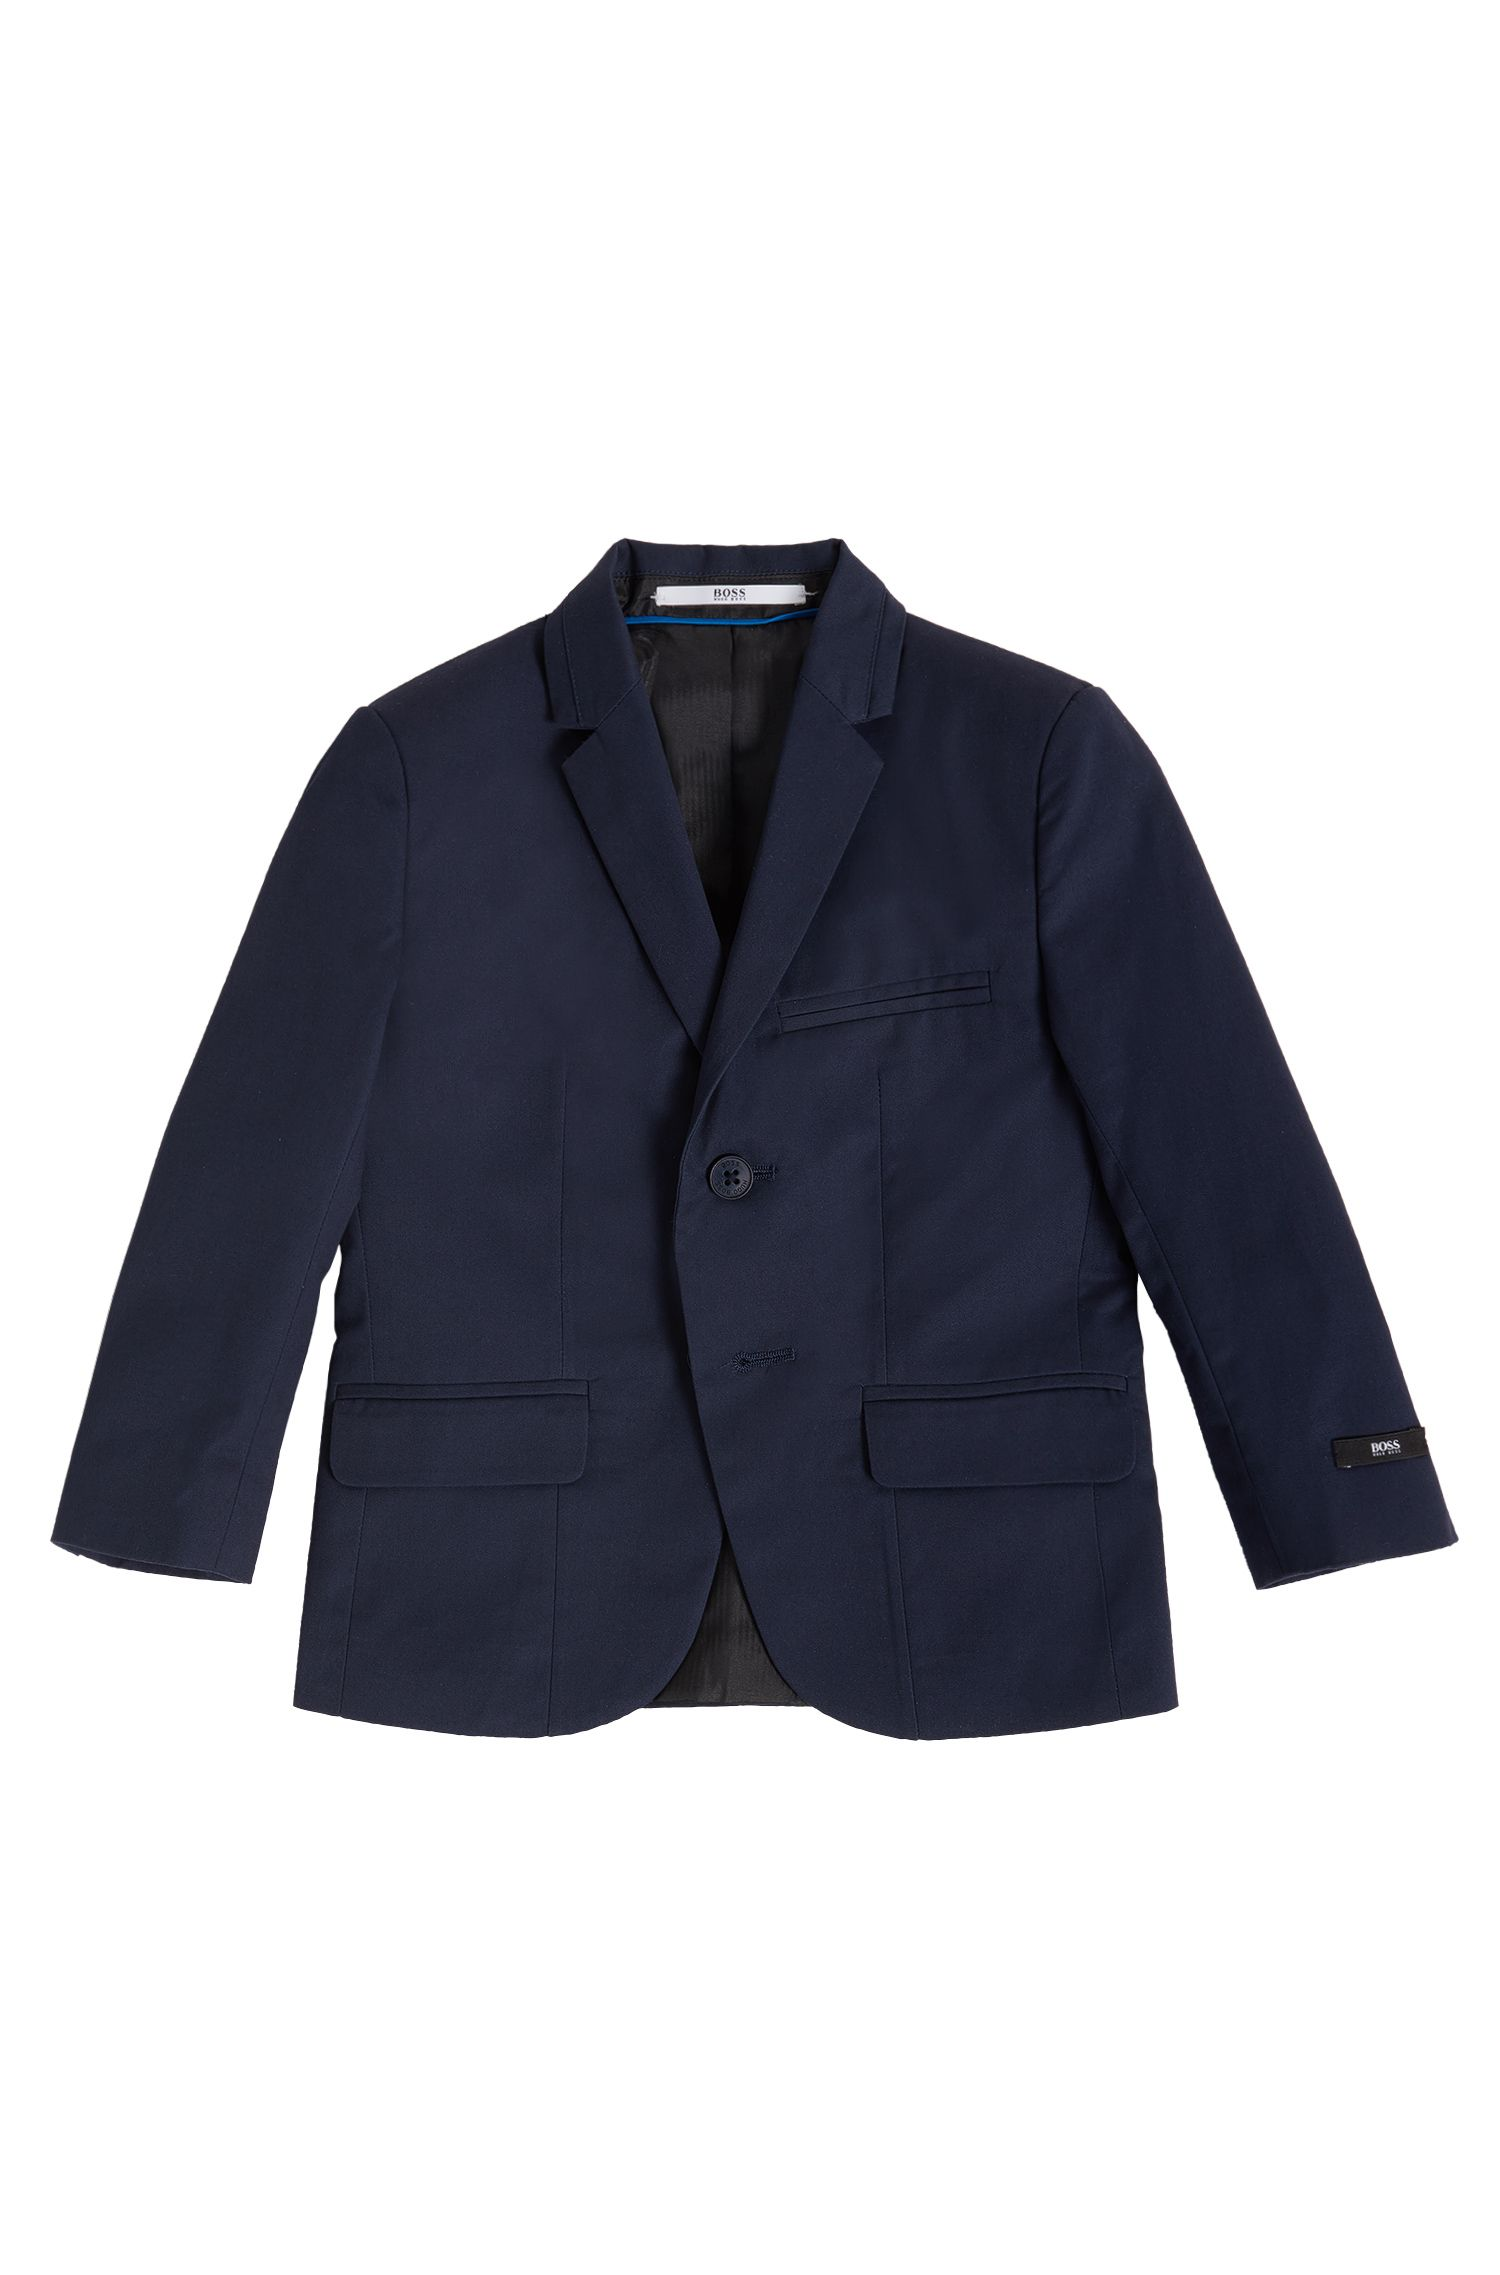 Kids' regular-fit suit jacket in cotton twill